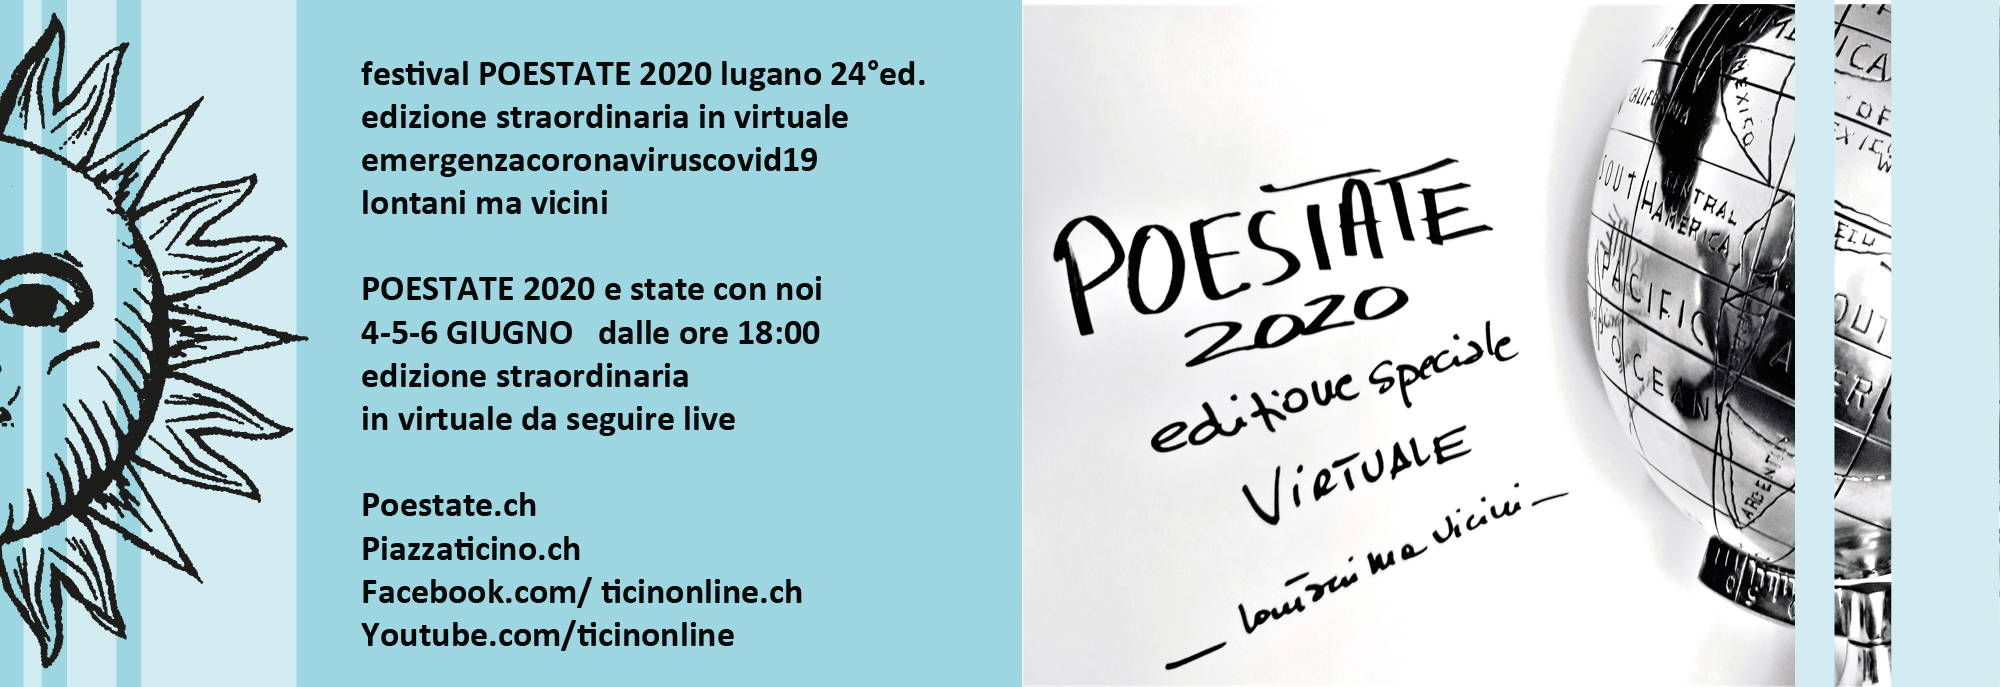 in virtuale POESTATE 2020